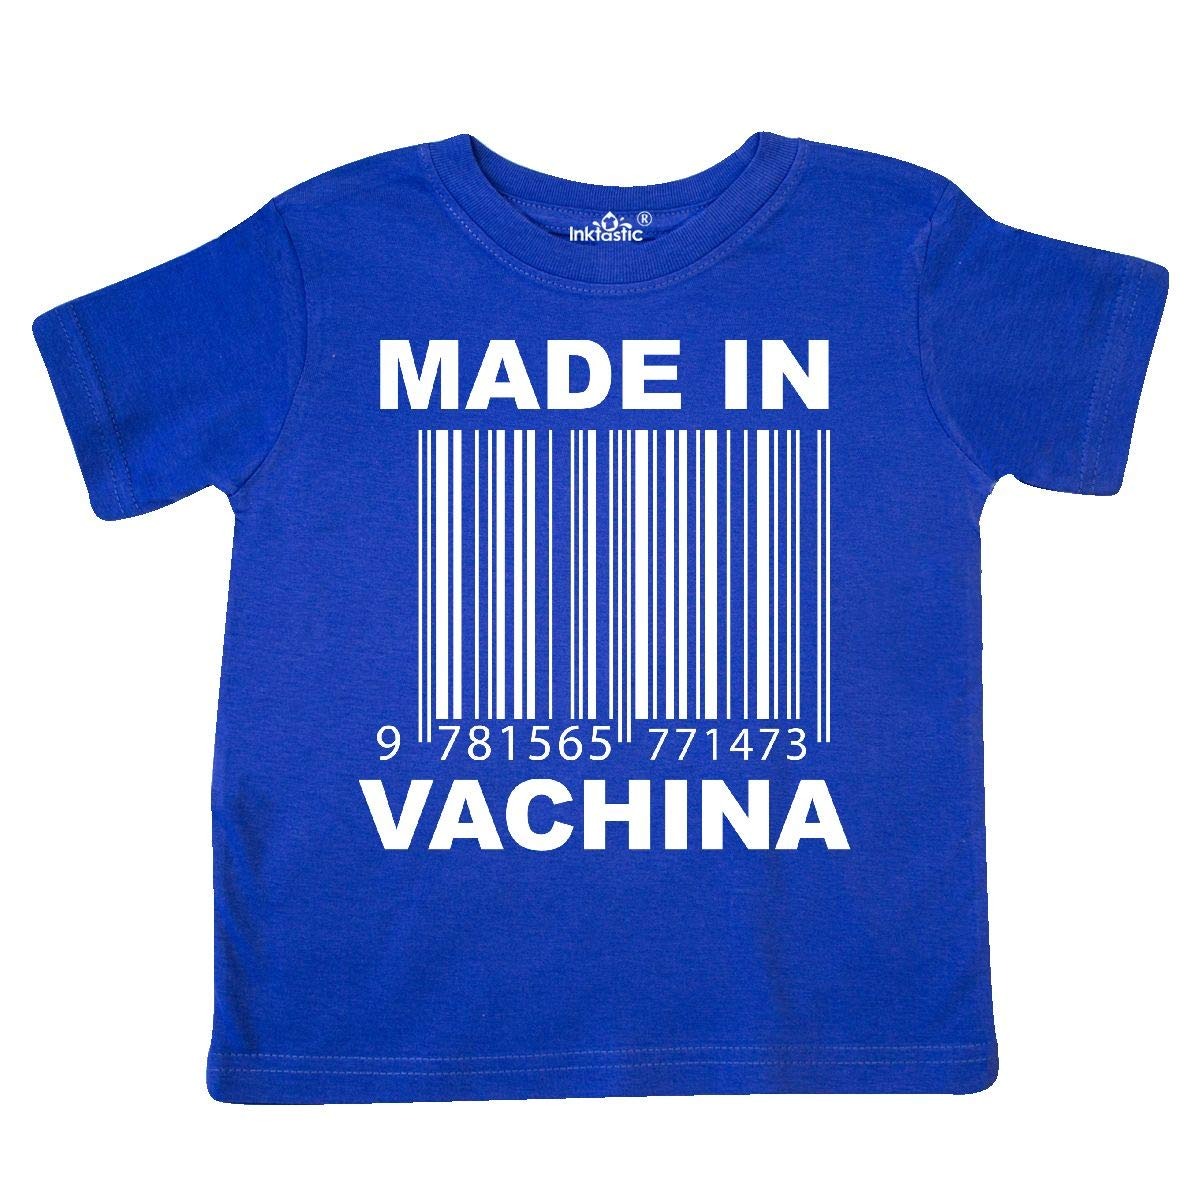 inktastic Made in Vachina Toddler T-Shirt